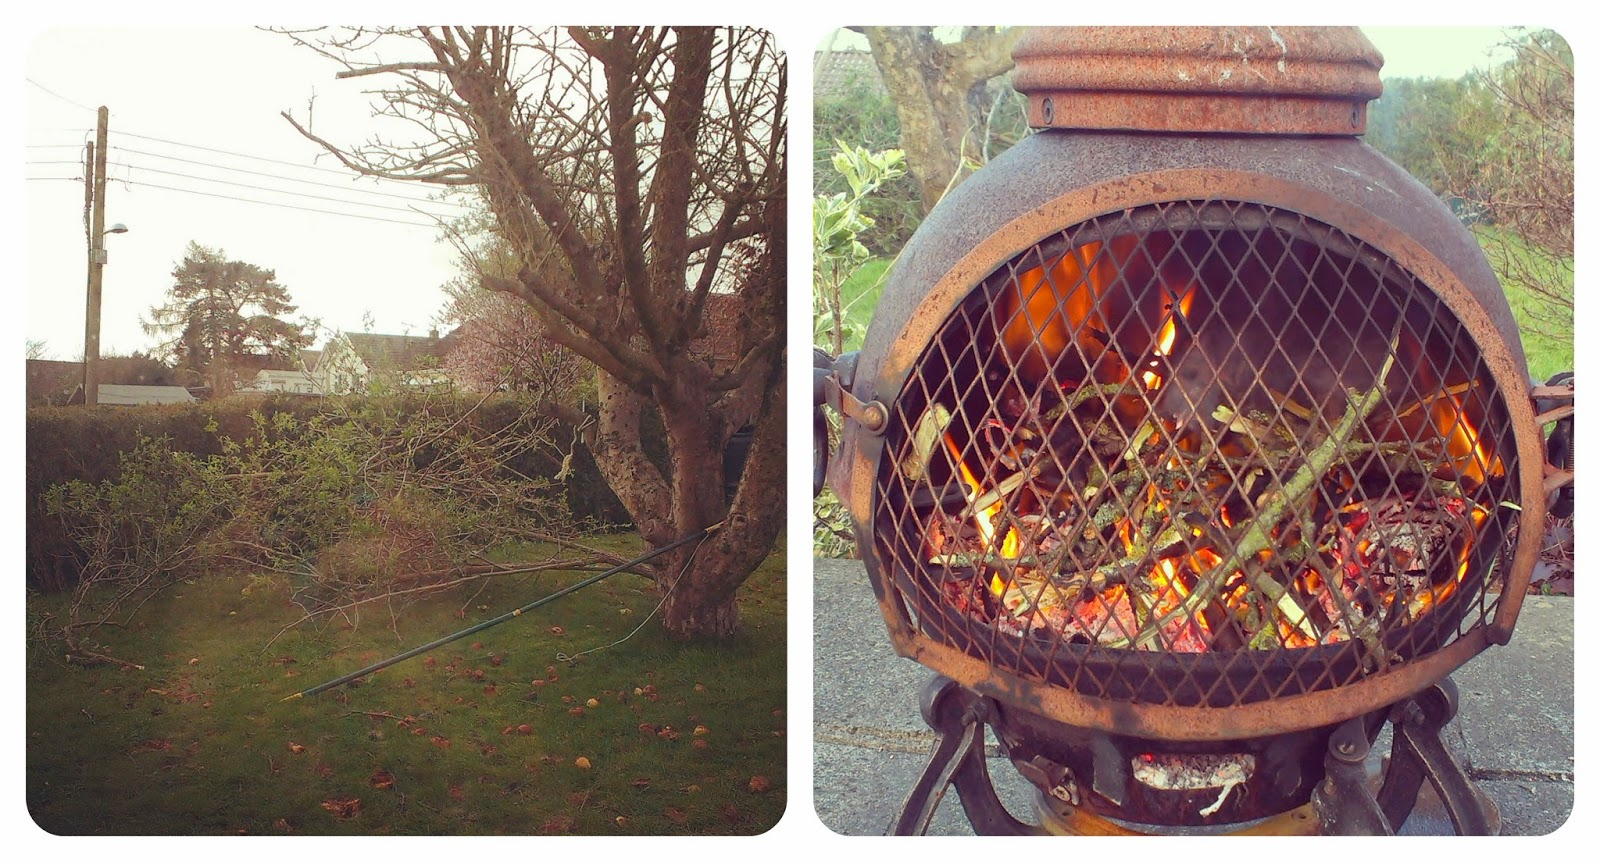 Elder tree pruning and burning in the chimenea